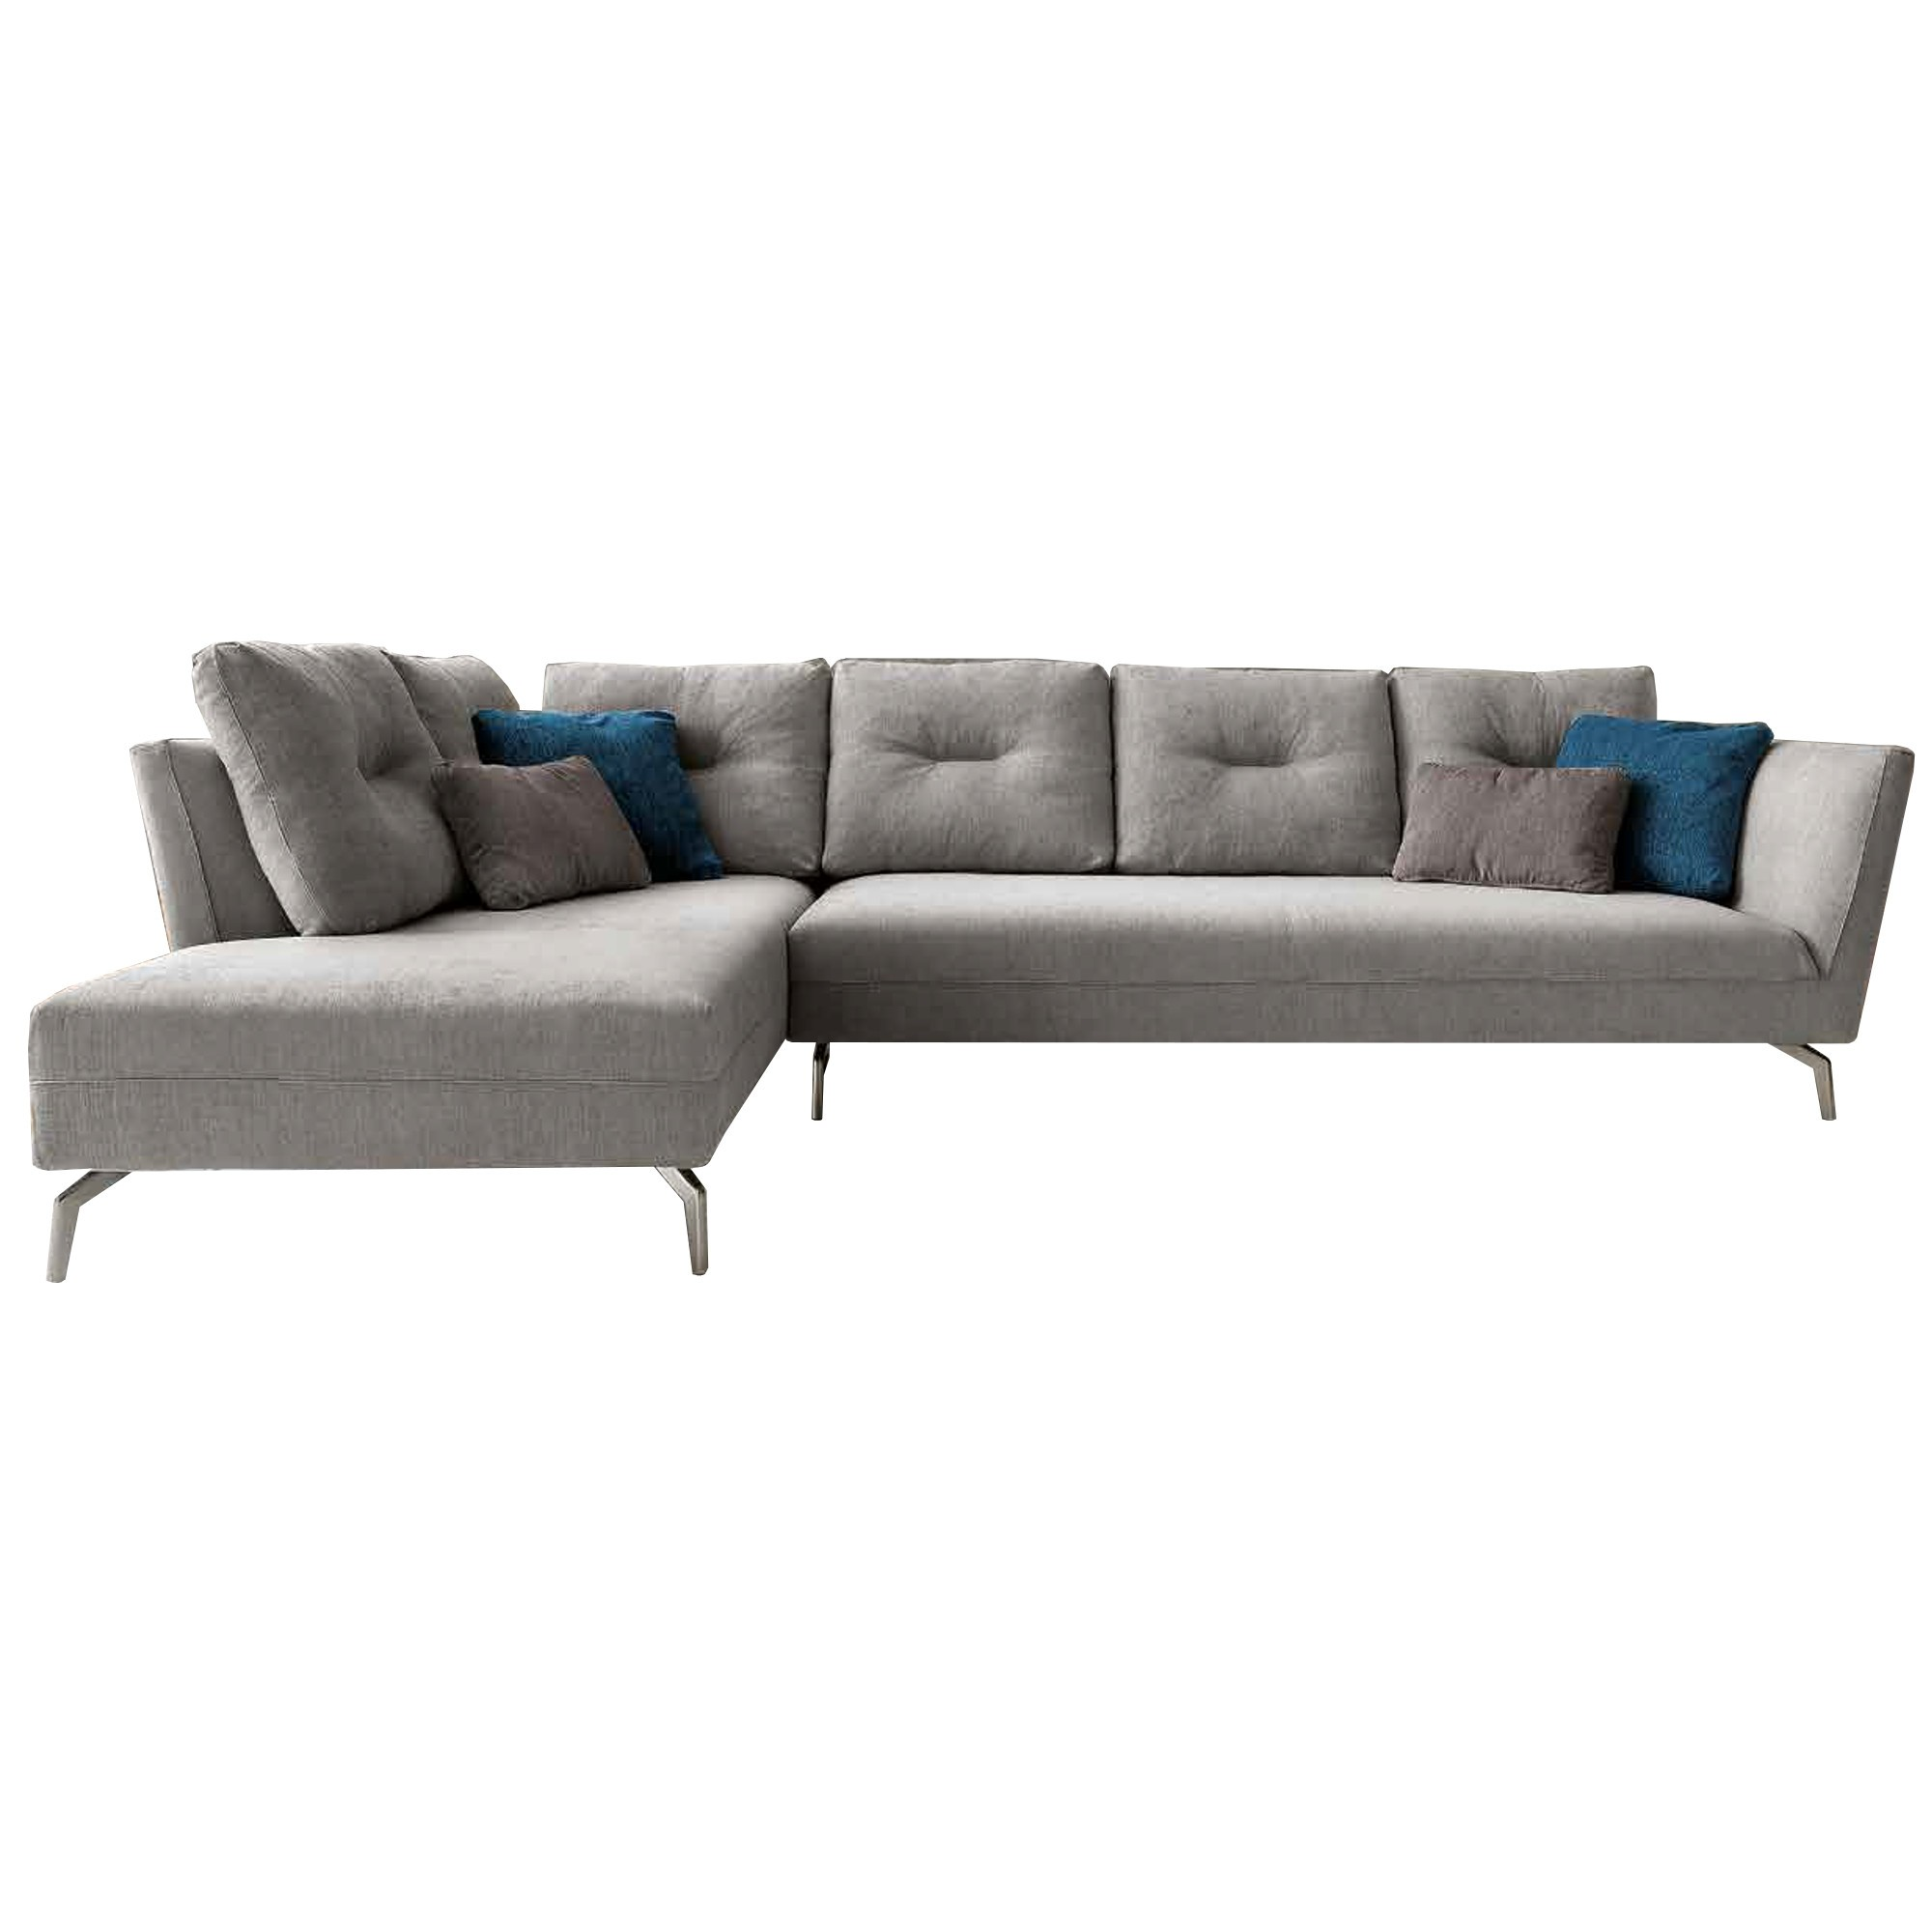 Modular Sofa Sofas With Chaise Longue